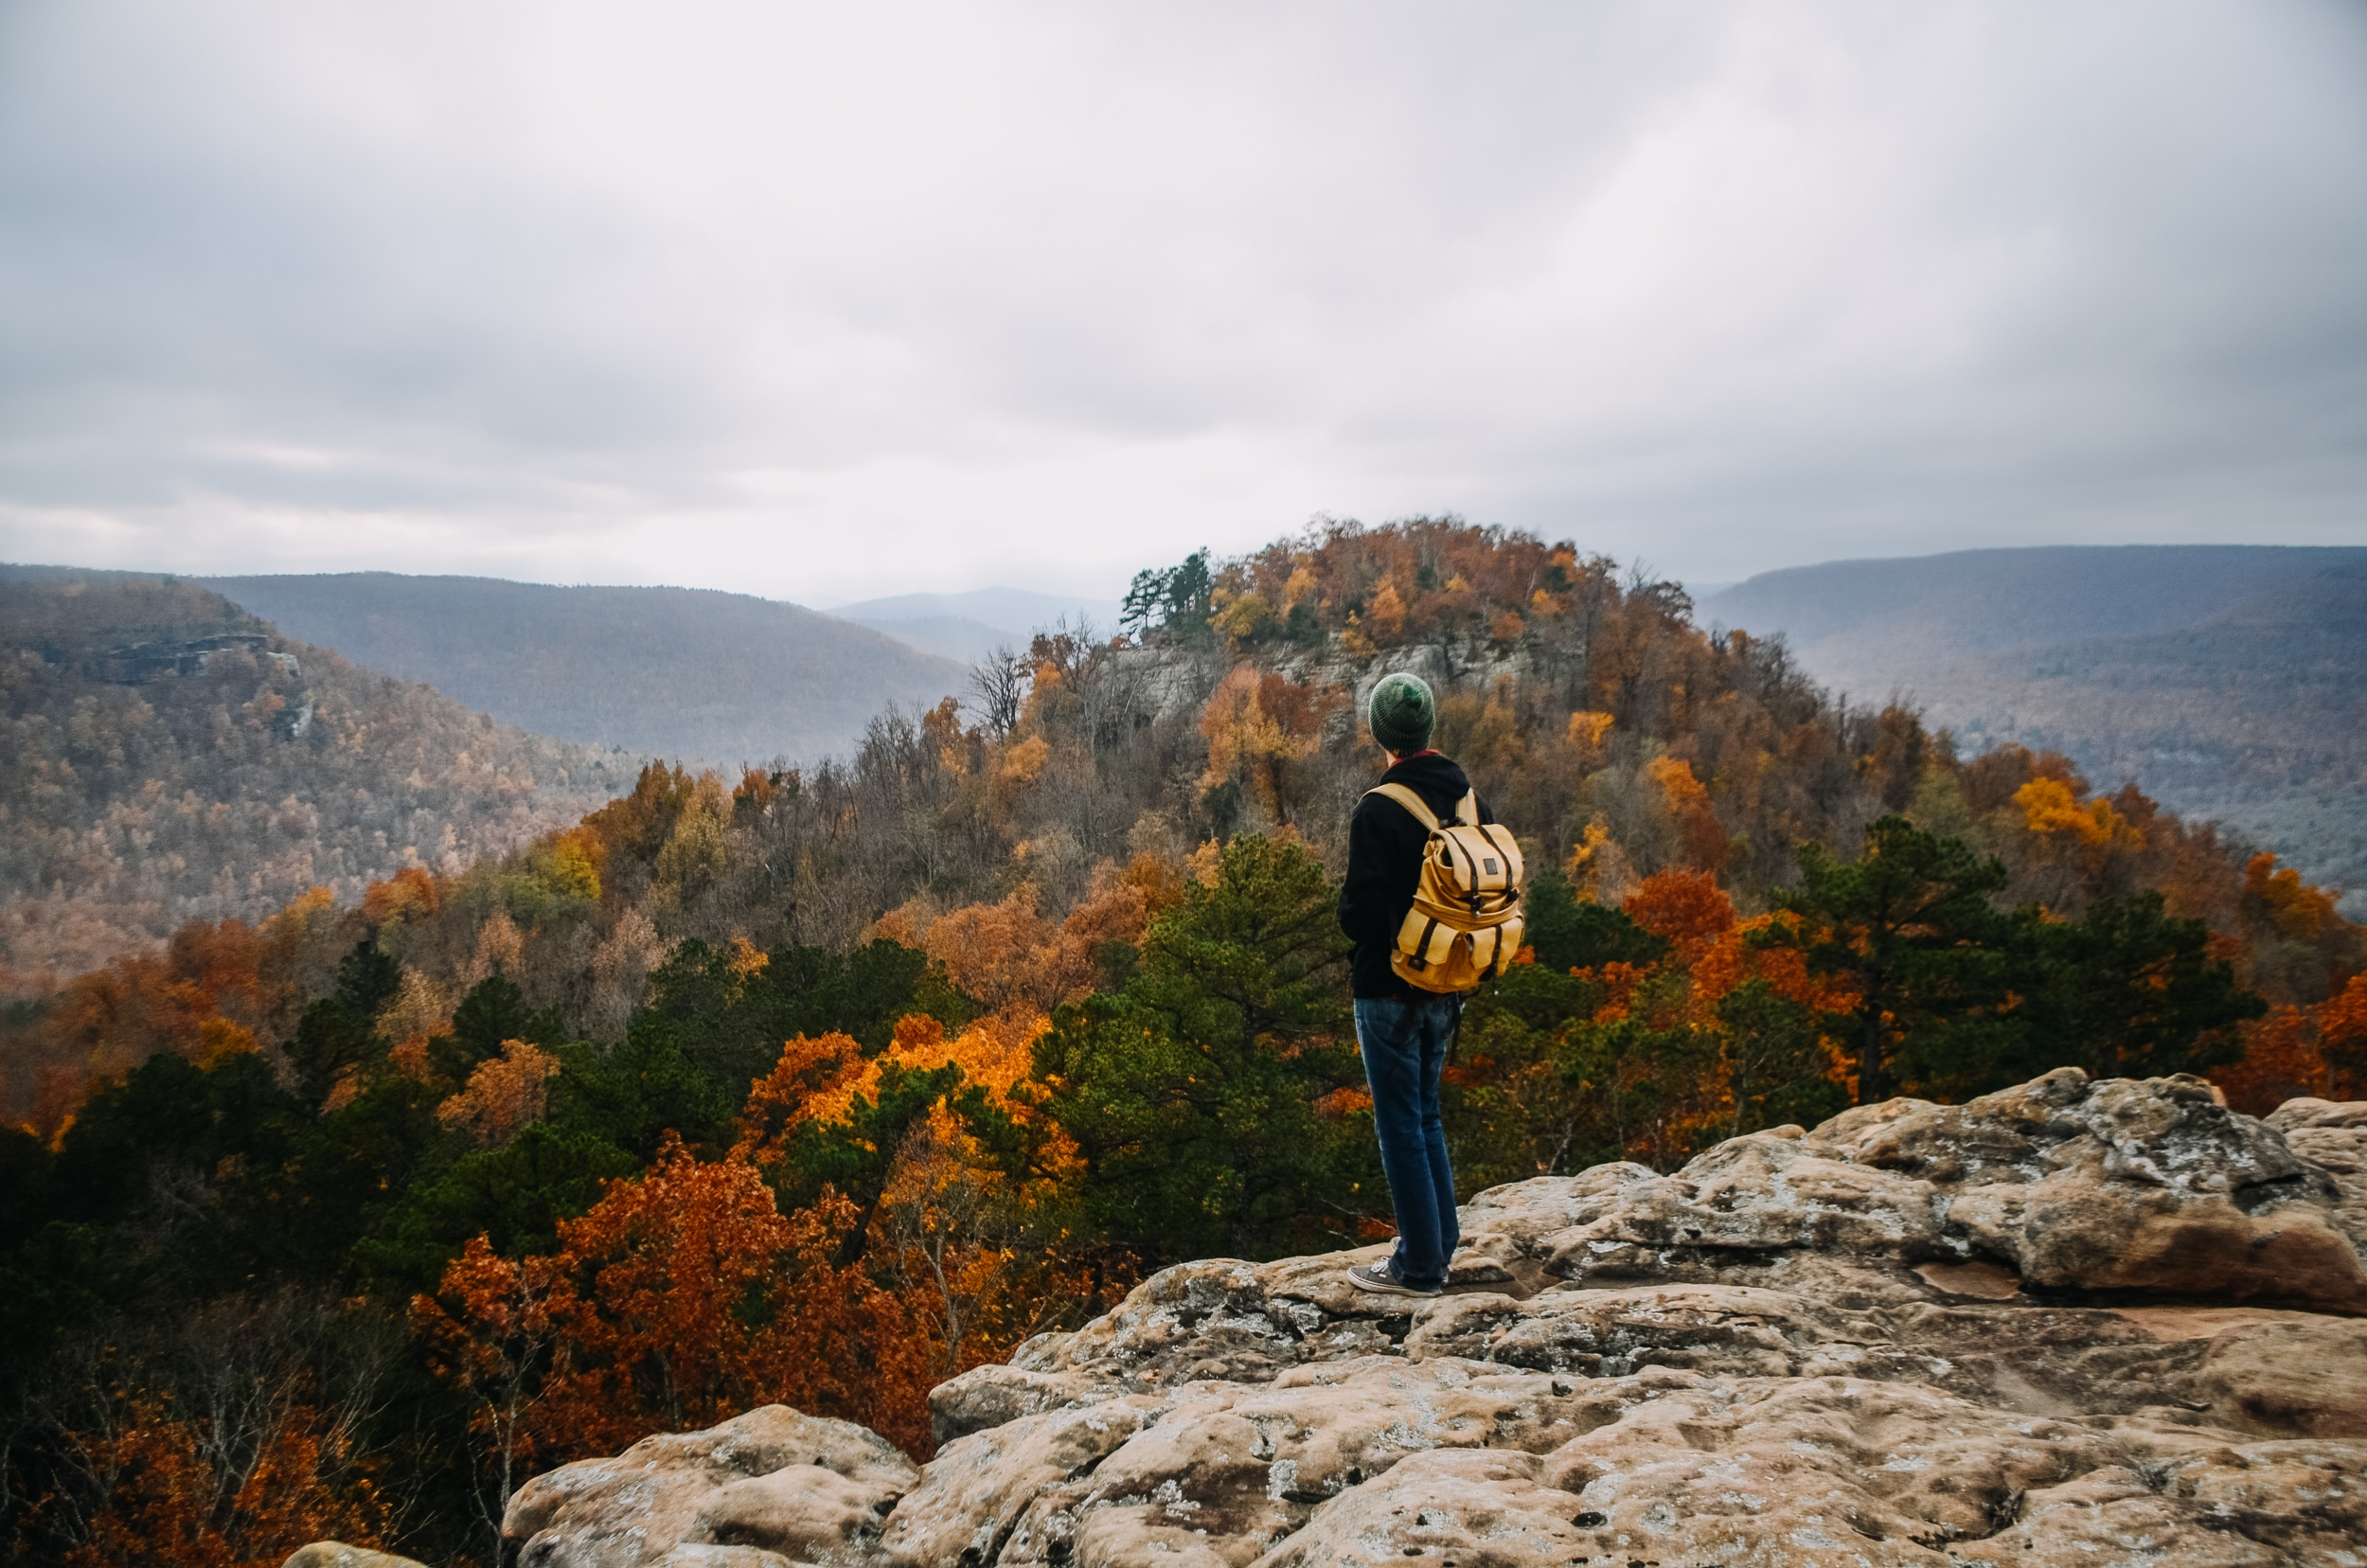 A hiker with a yellow backpack overlooking the foliage of Ozarks